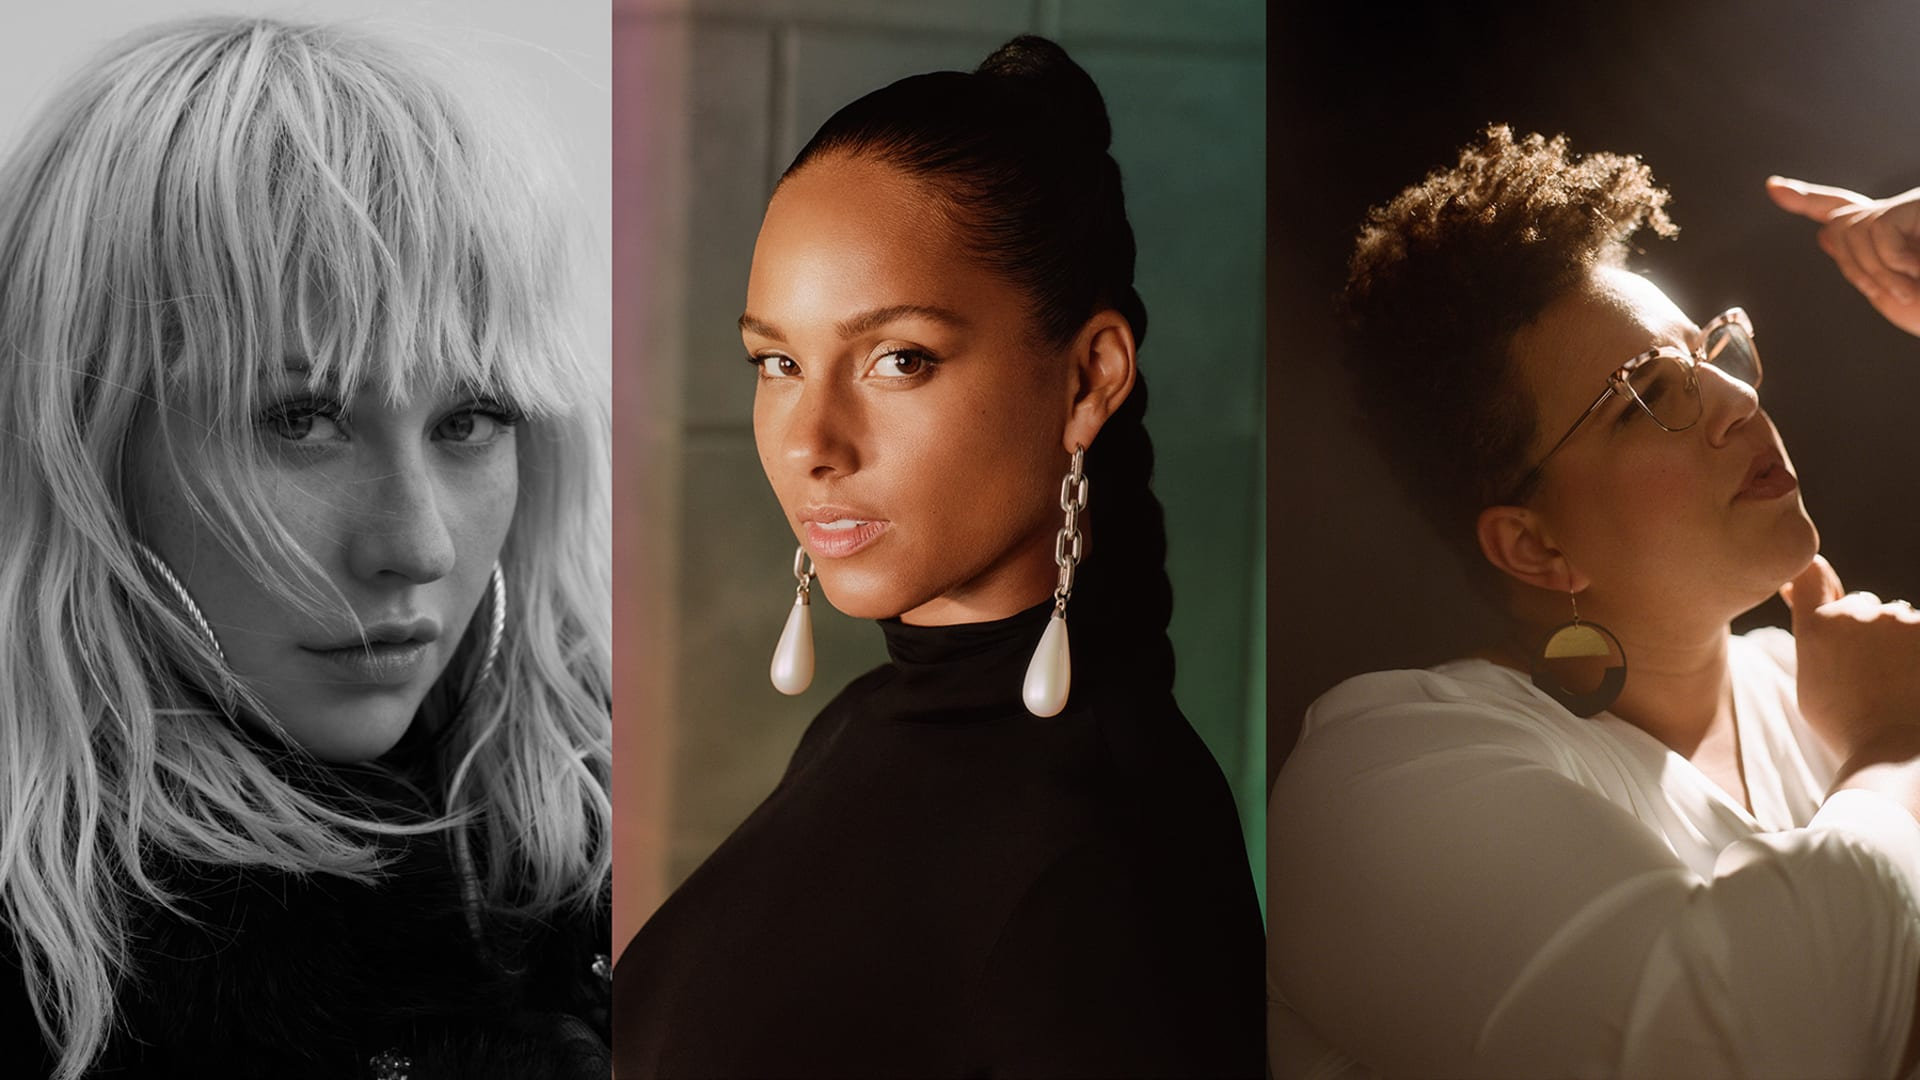 (from L to R) Christina Aguilera, Alicia Keys, and Brittany Howard.